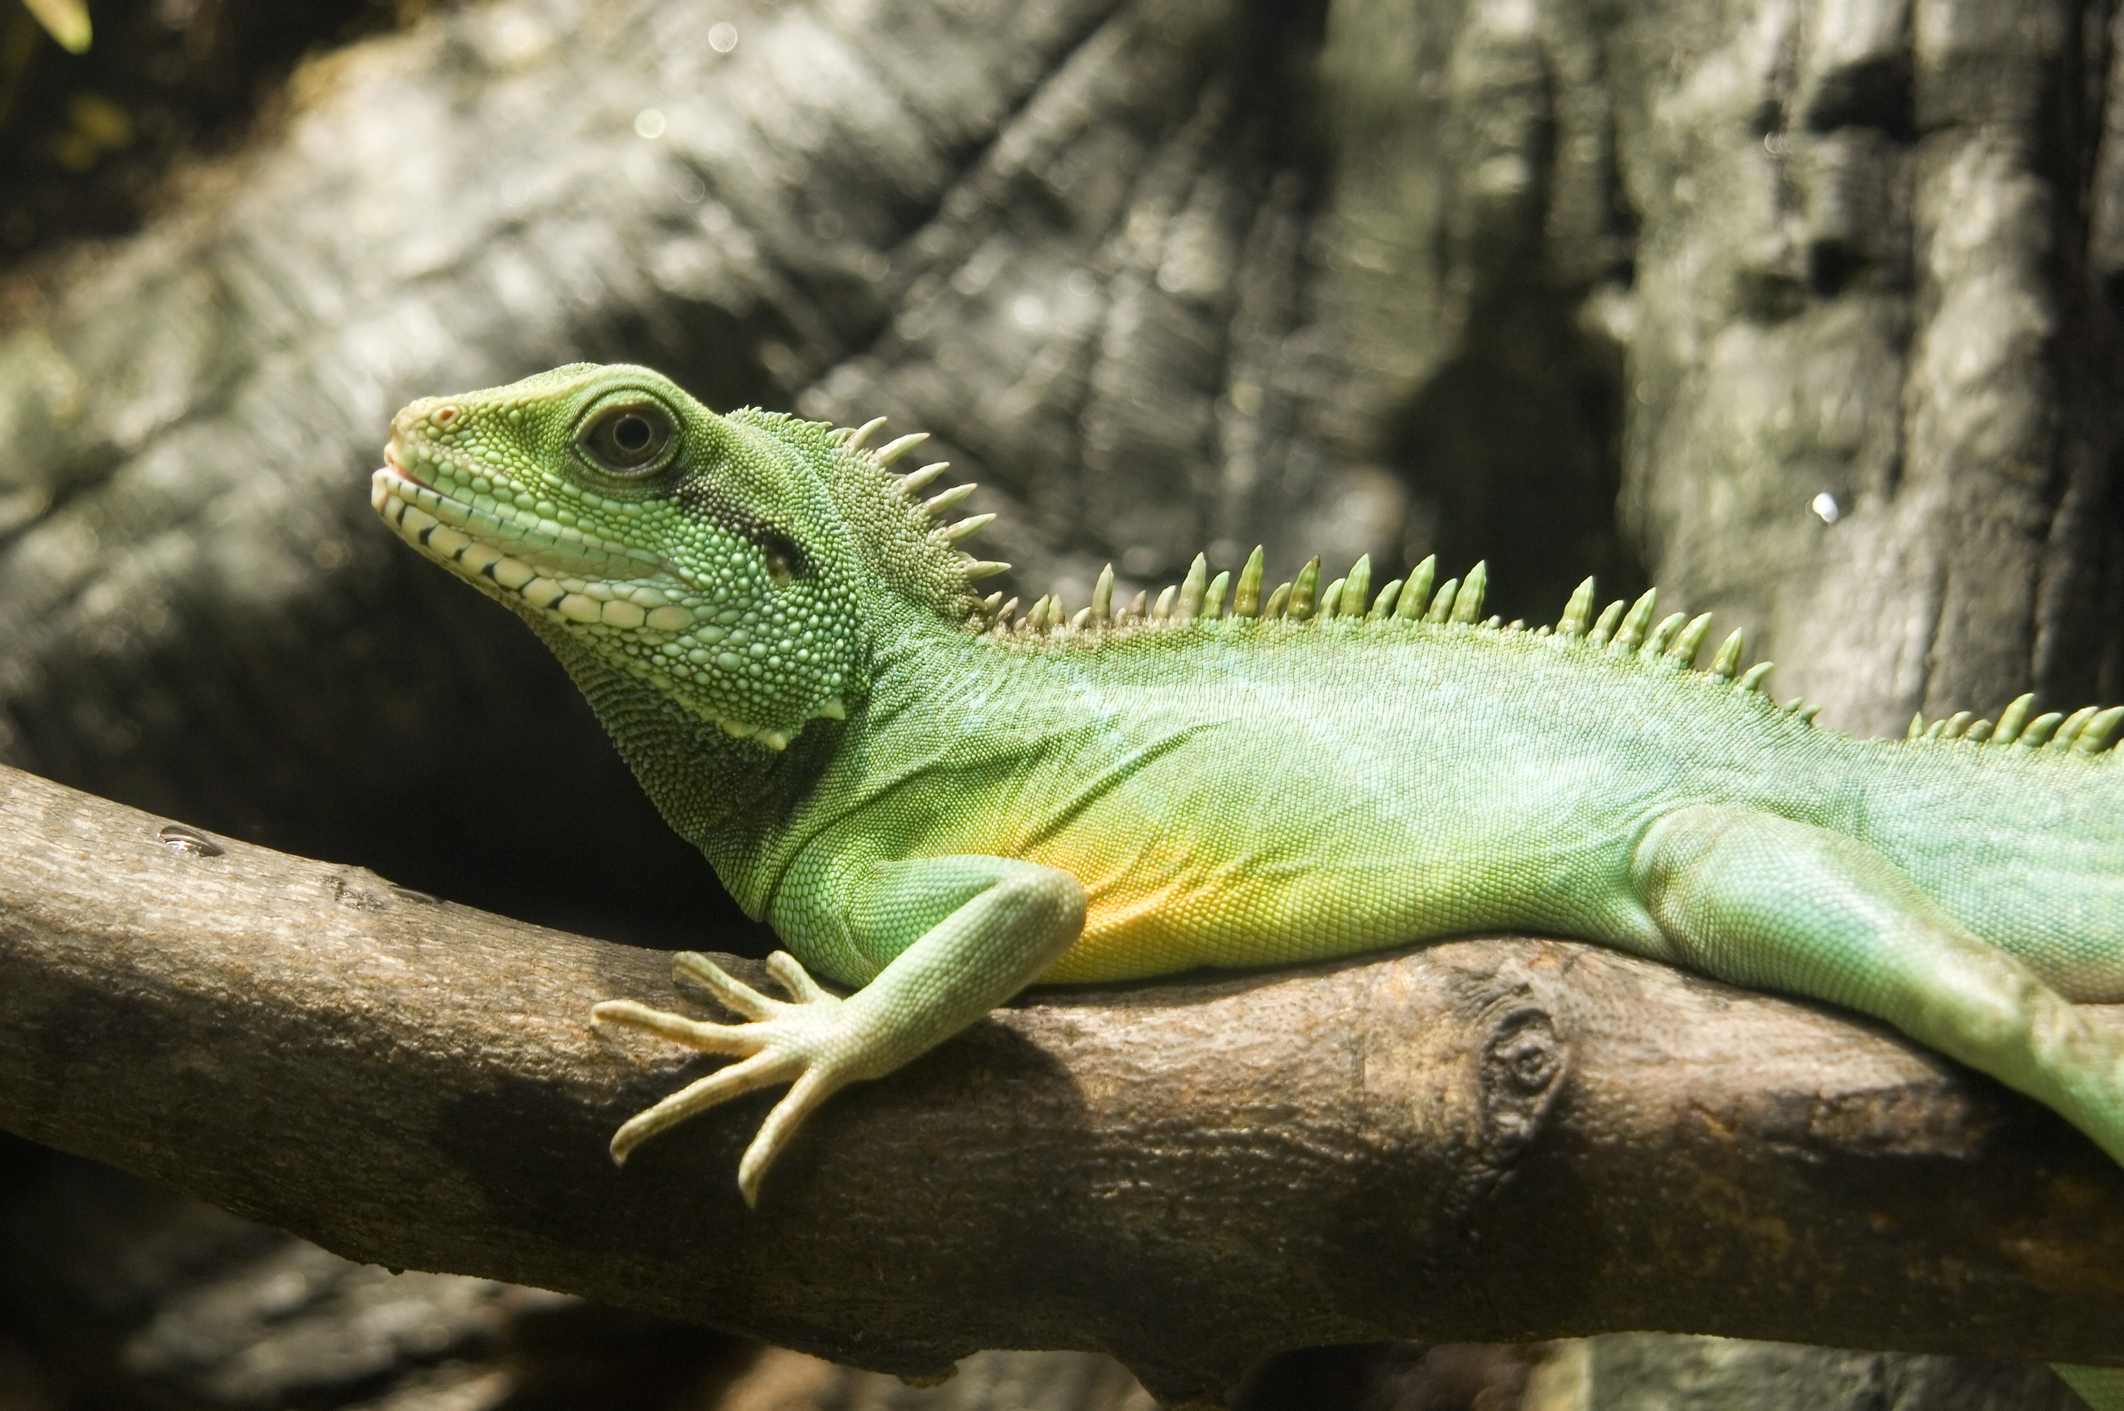 A Chinese Water Dragon at the Virginia Zoo